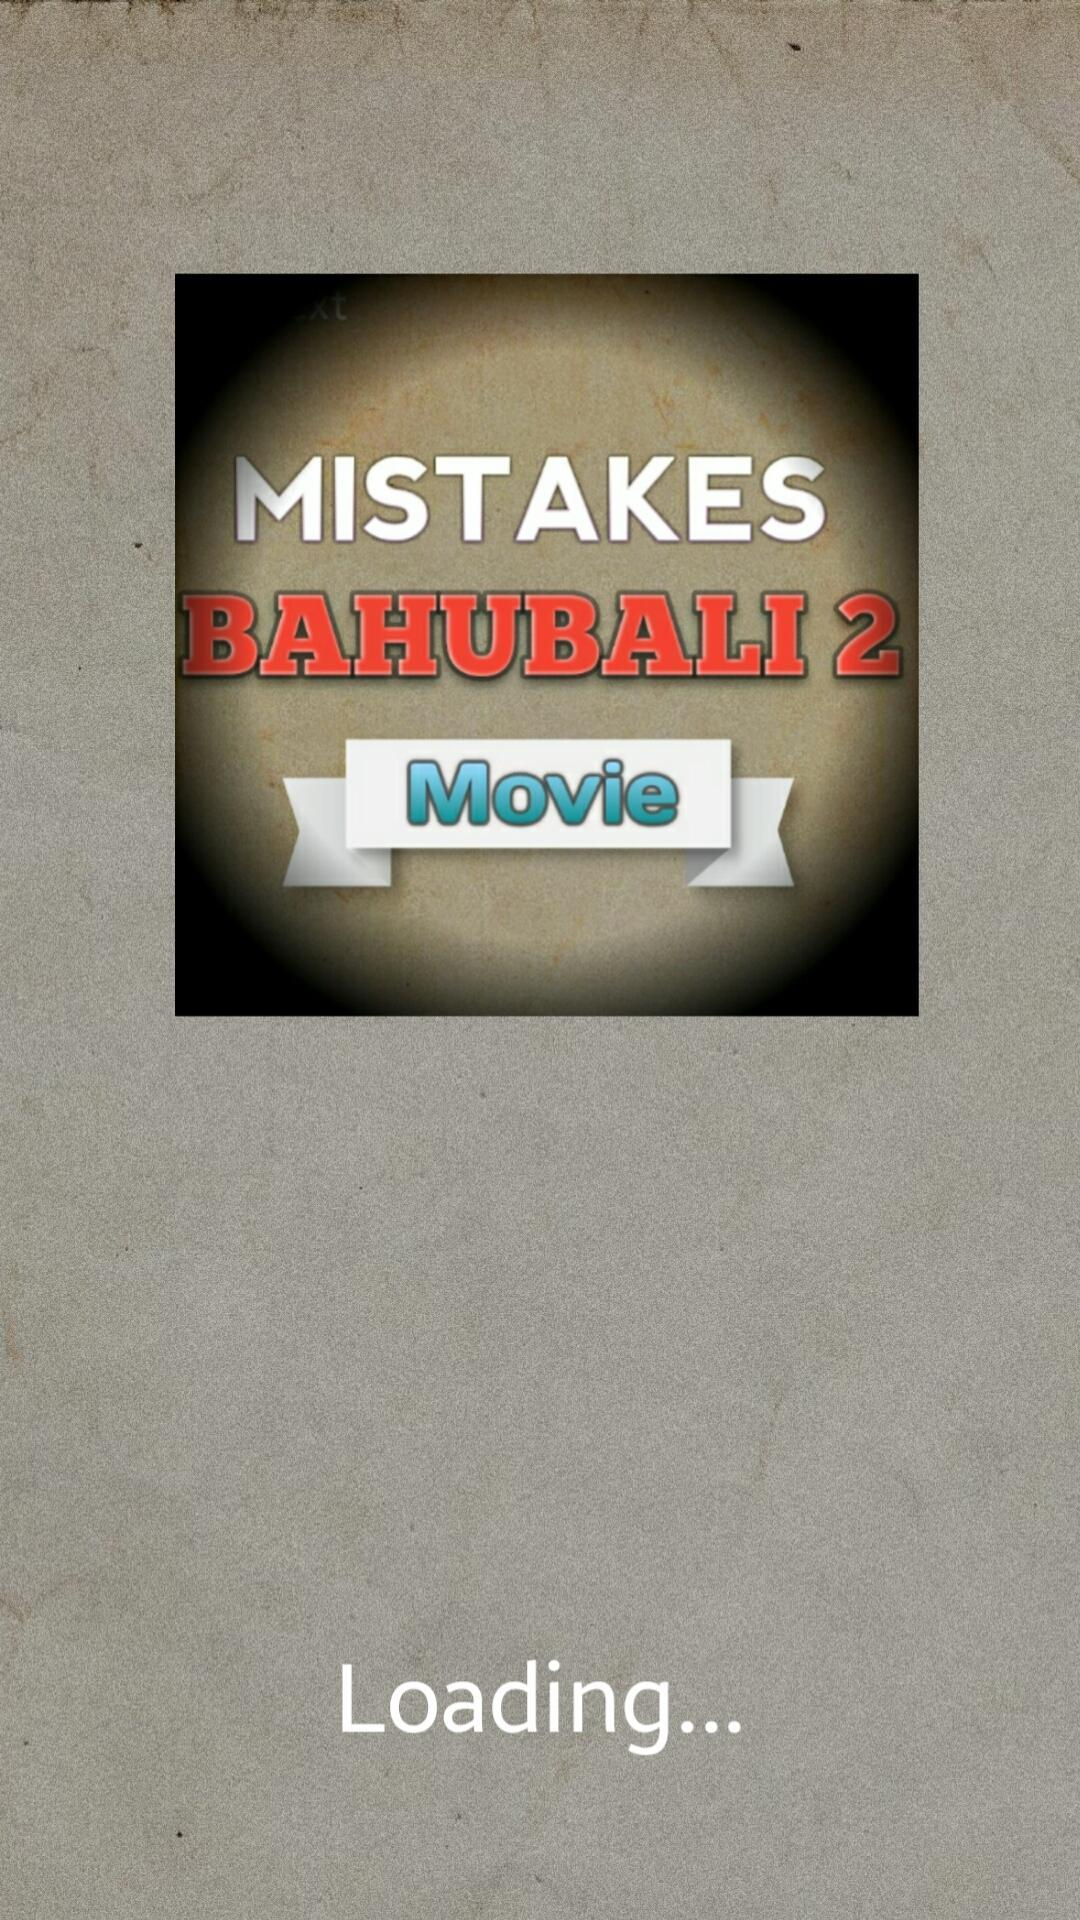 Mistakes of Bahubali 2 - Movie for Android - APK Download